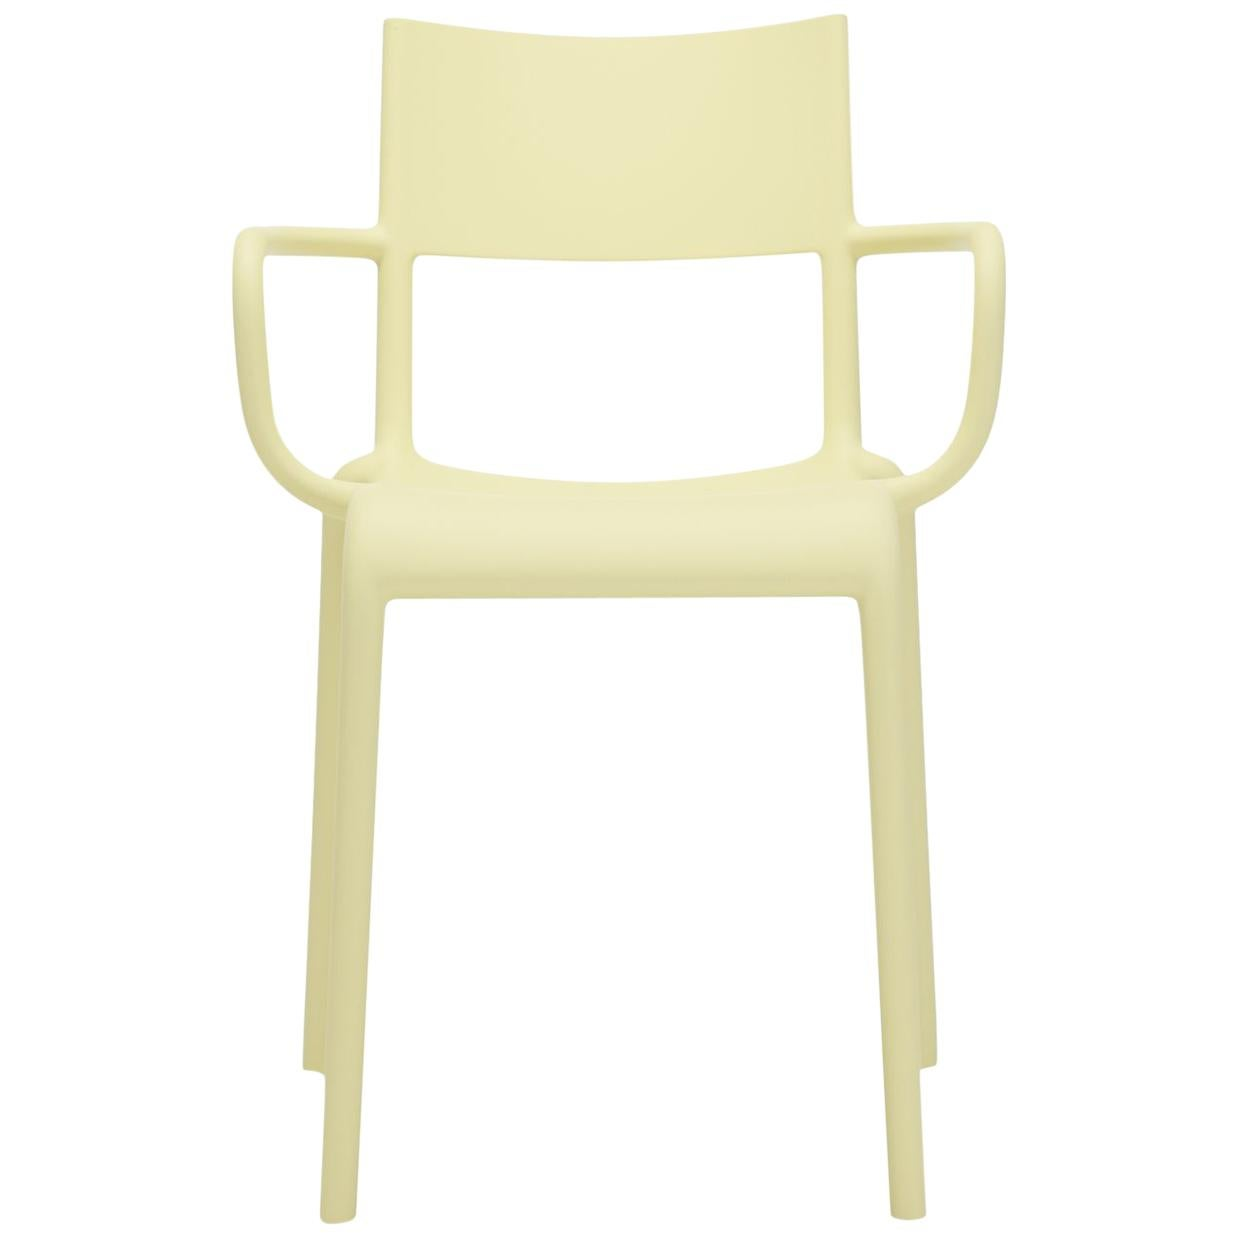 Set of 2 Kartell Generic A Chairs in Yellow by Philippe Starck